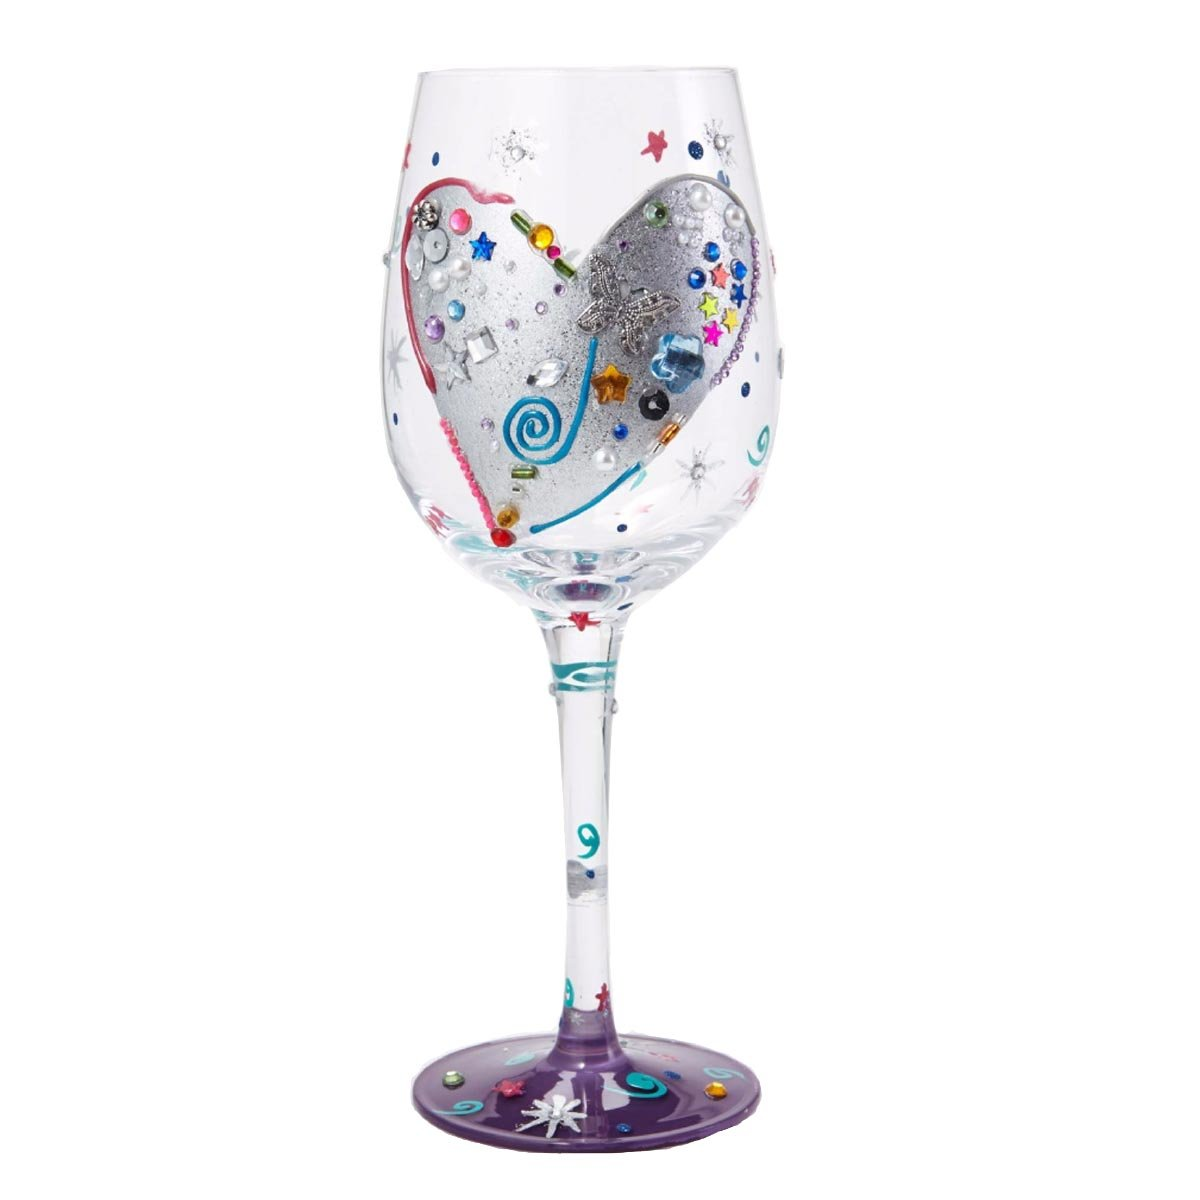 together image zq decorative amazing easy with reputable wine decor design occasions especial home glasses bodacious champagne